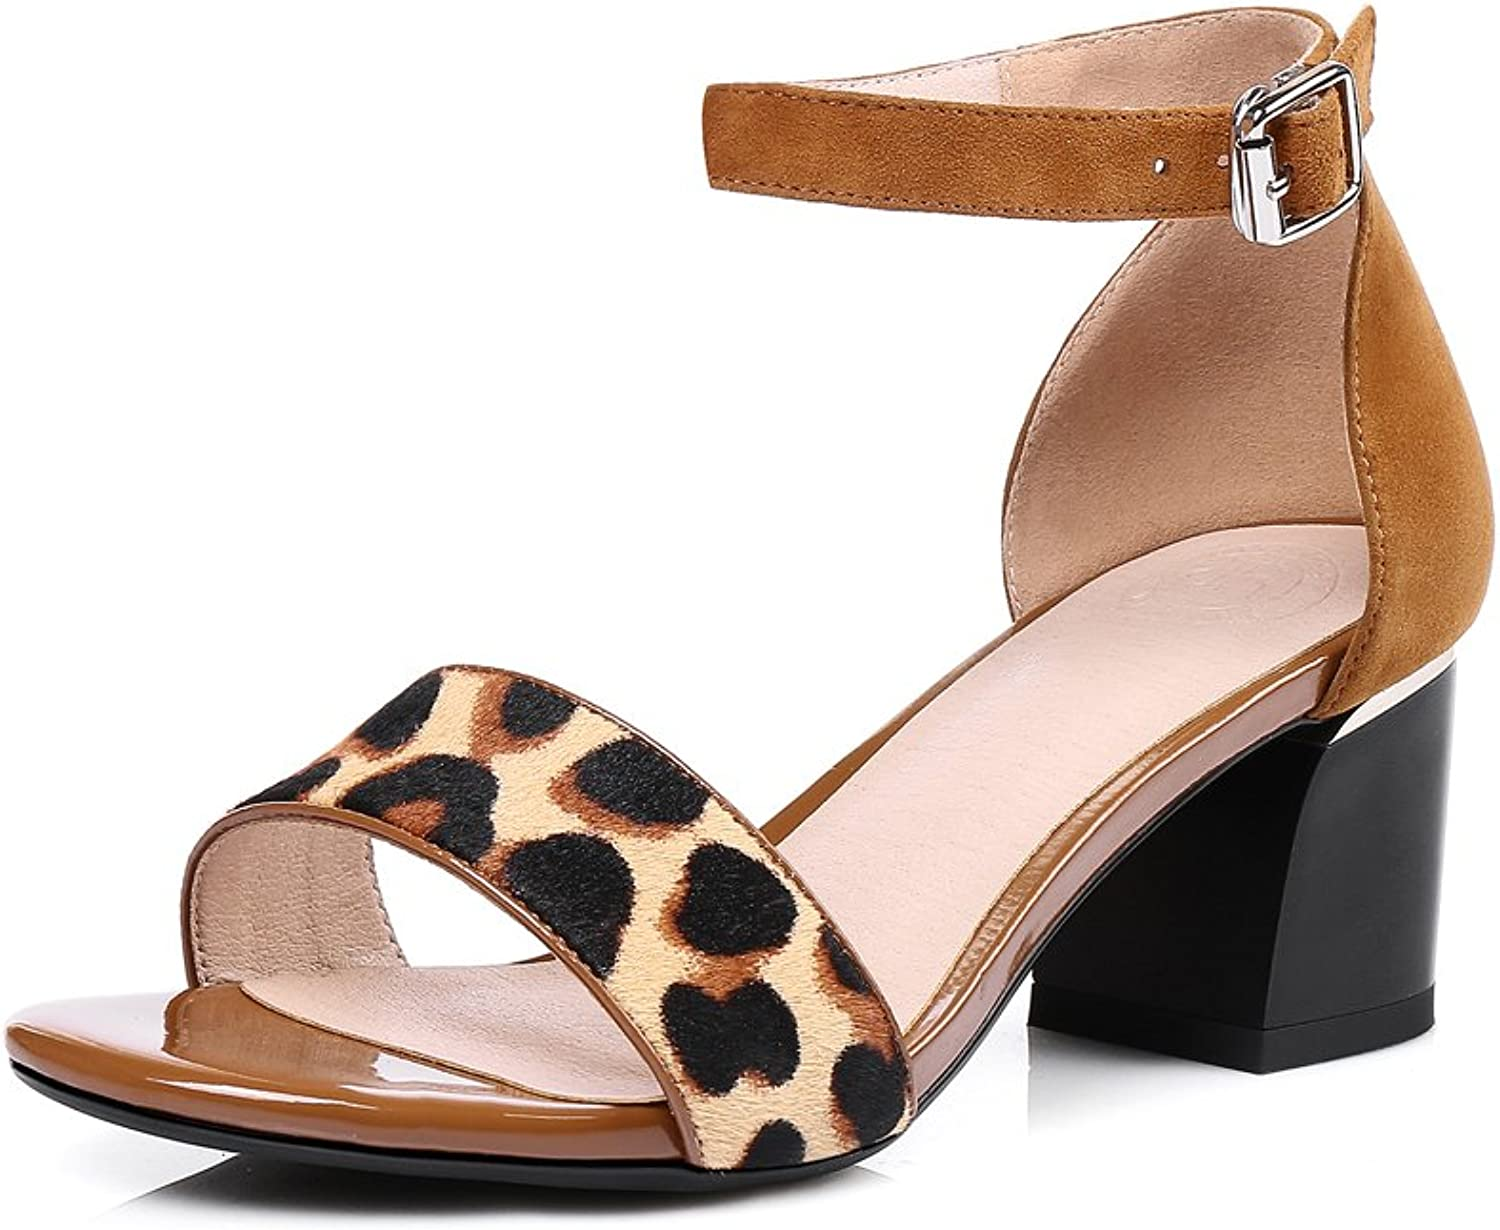 MINIVOG Women Open Toe Ankle Strap Suede Leather Thick High Heels Sandals